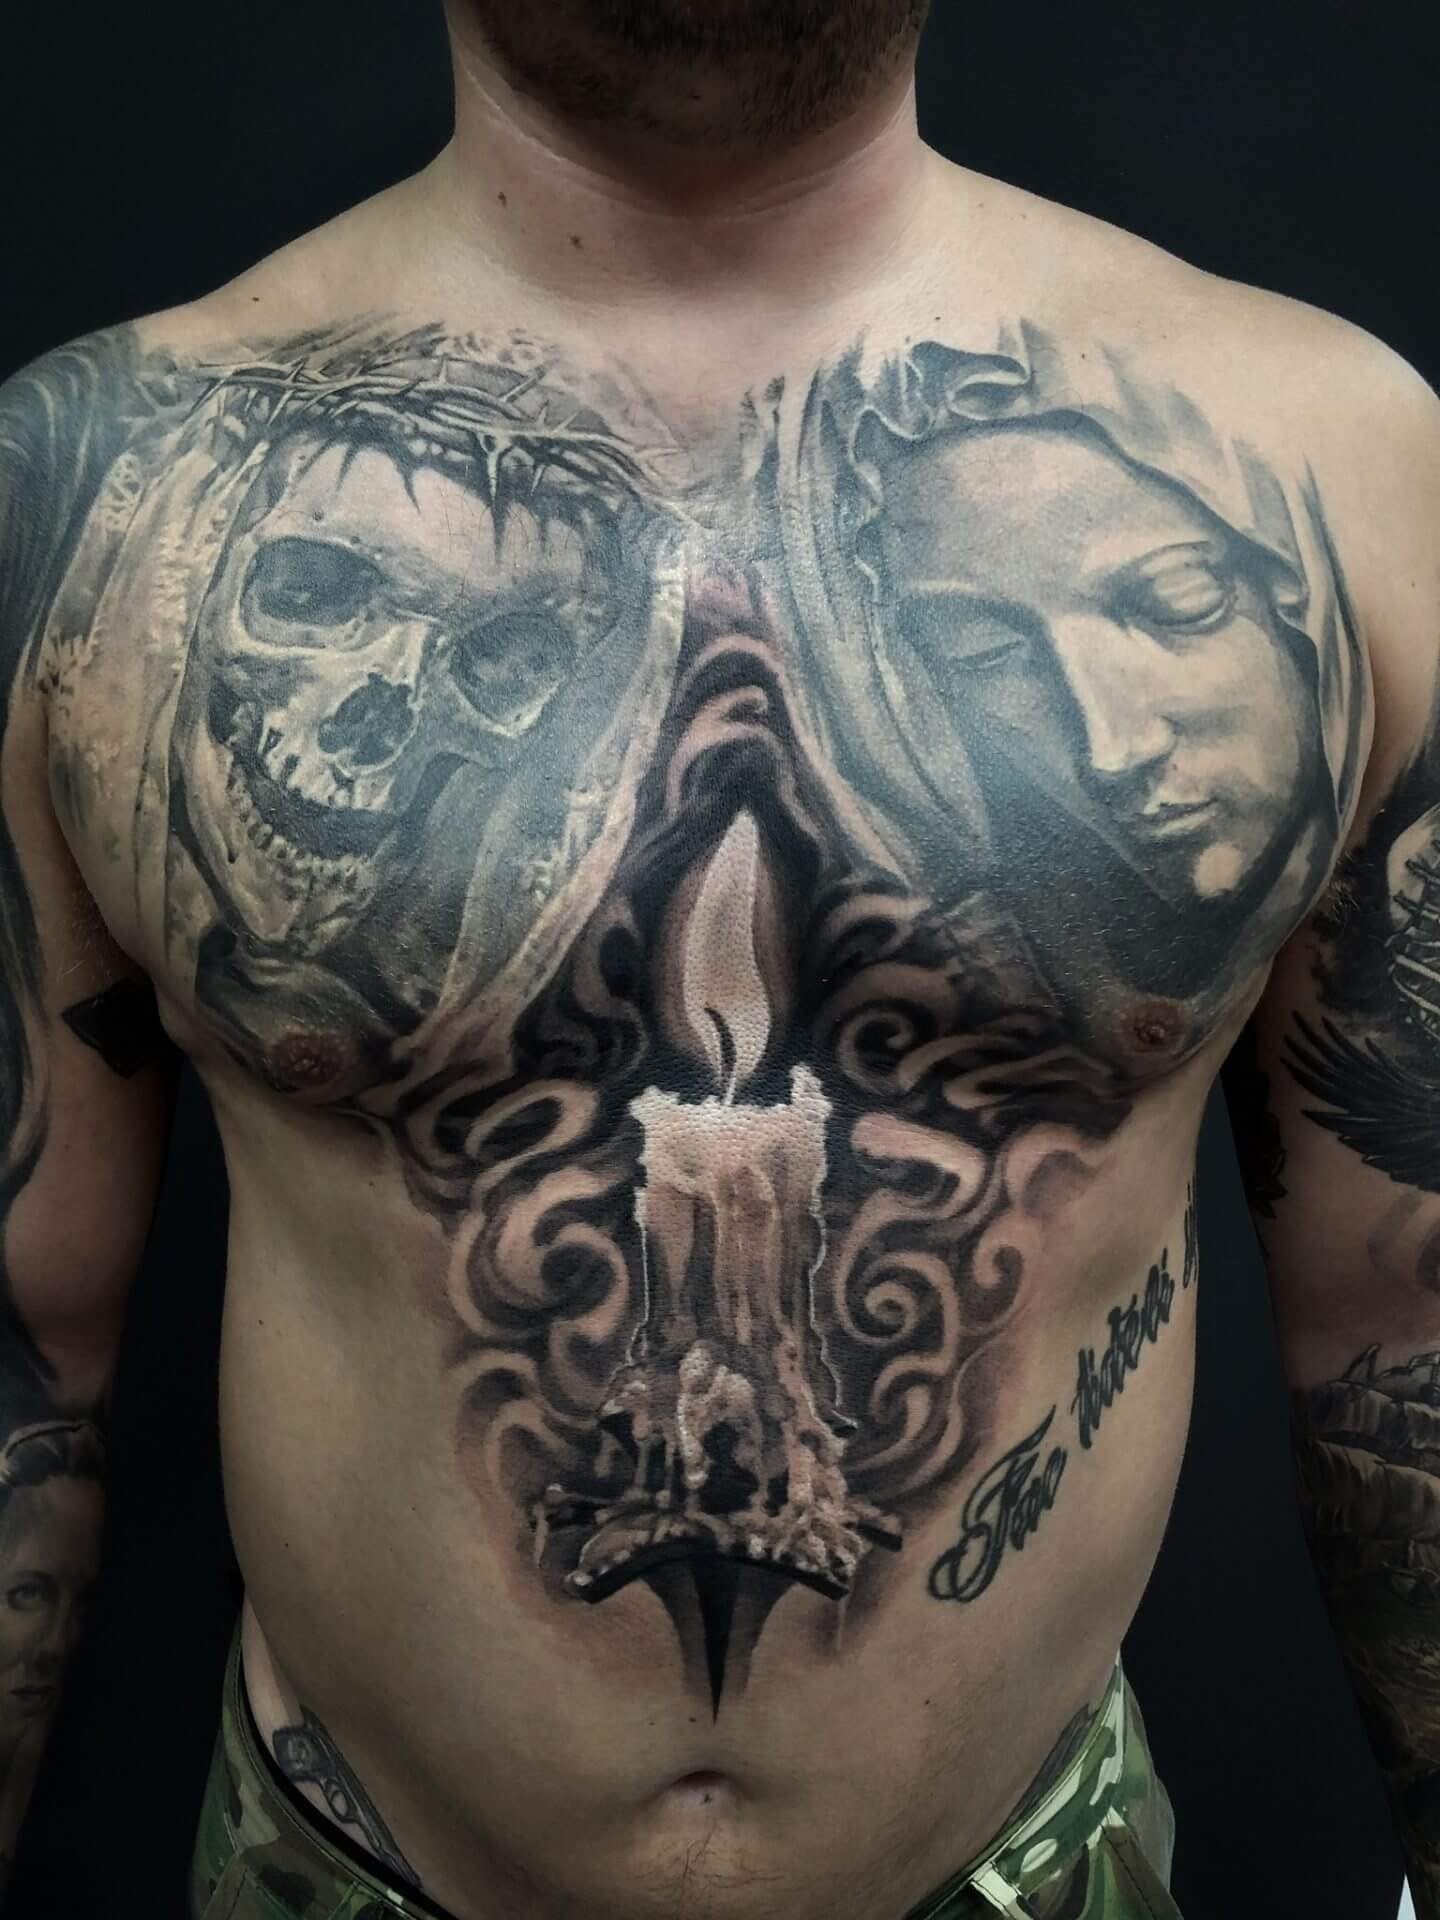 religous tattoo chest.